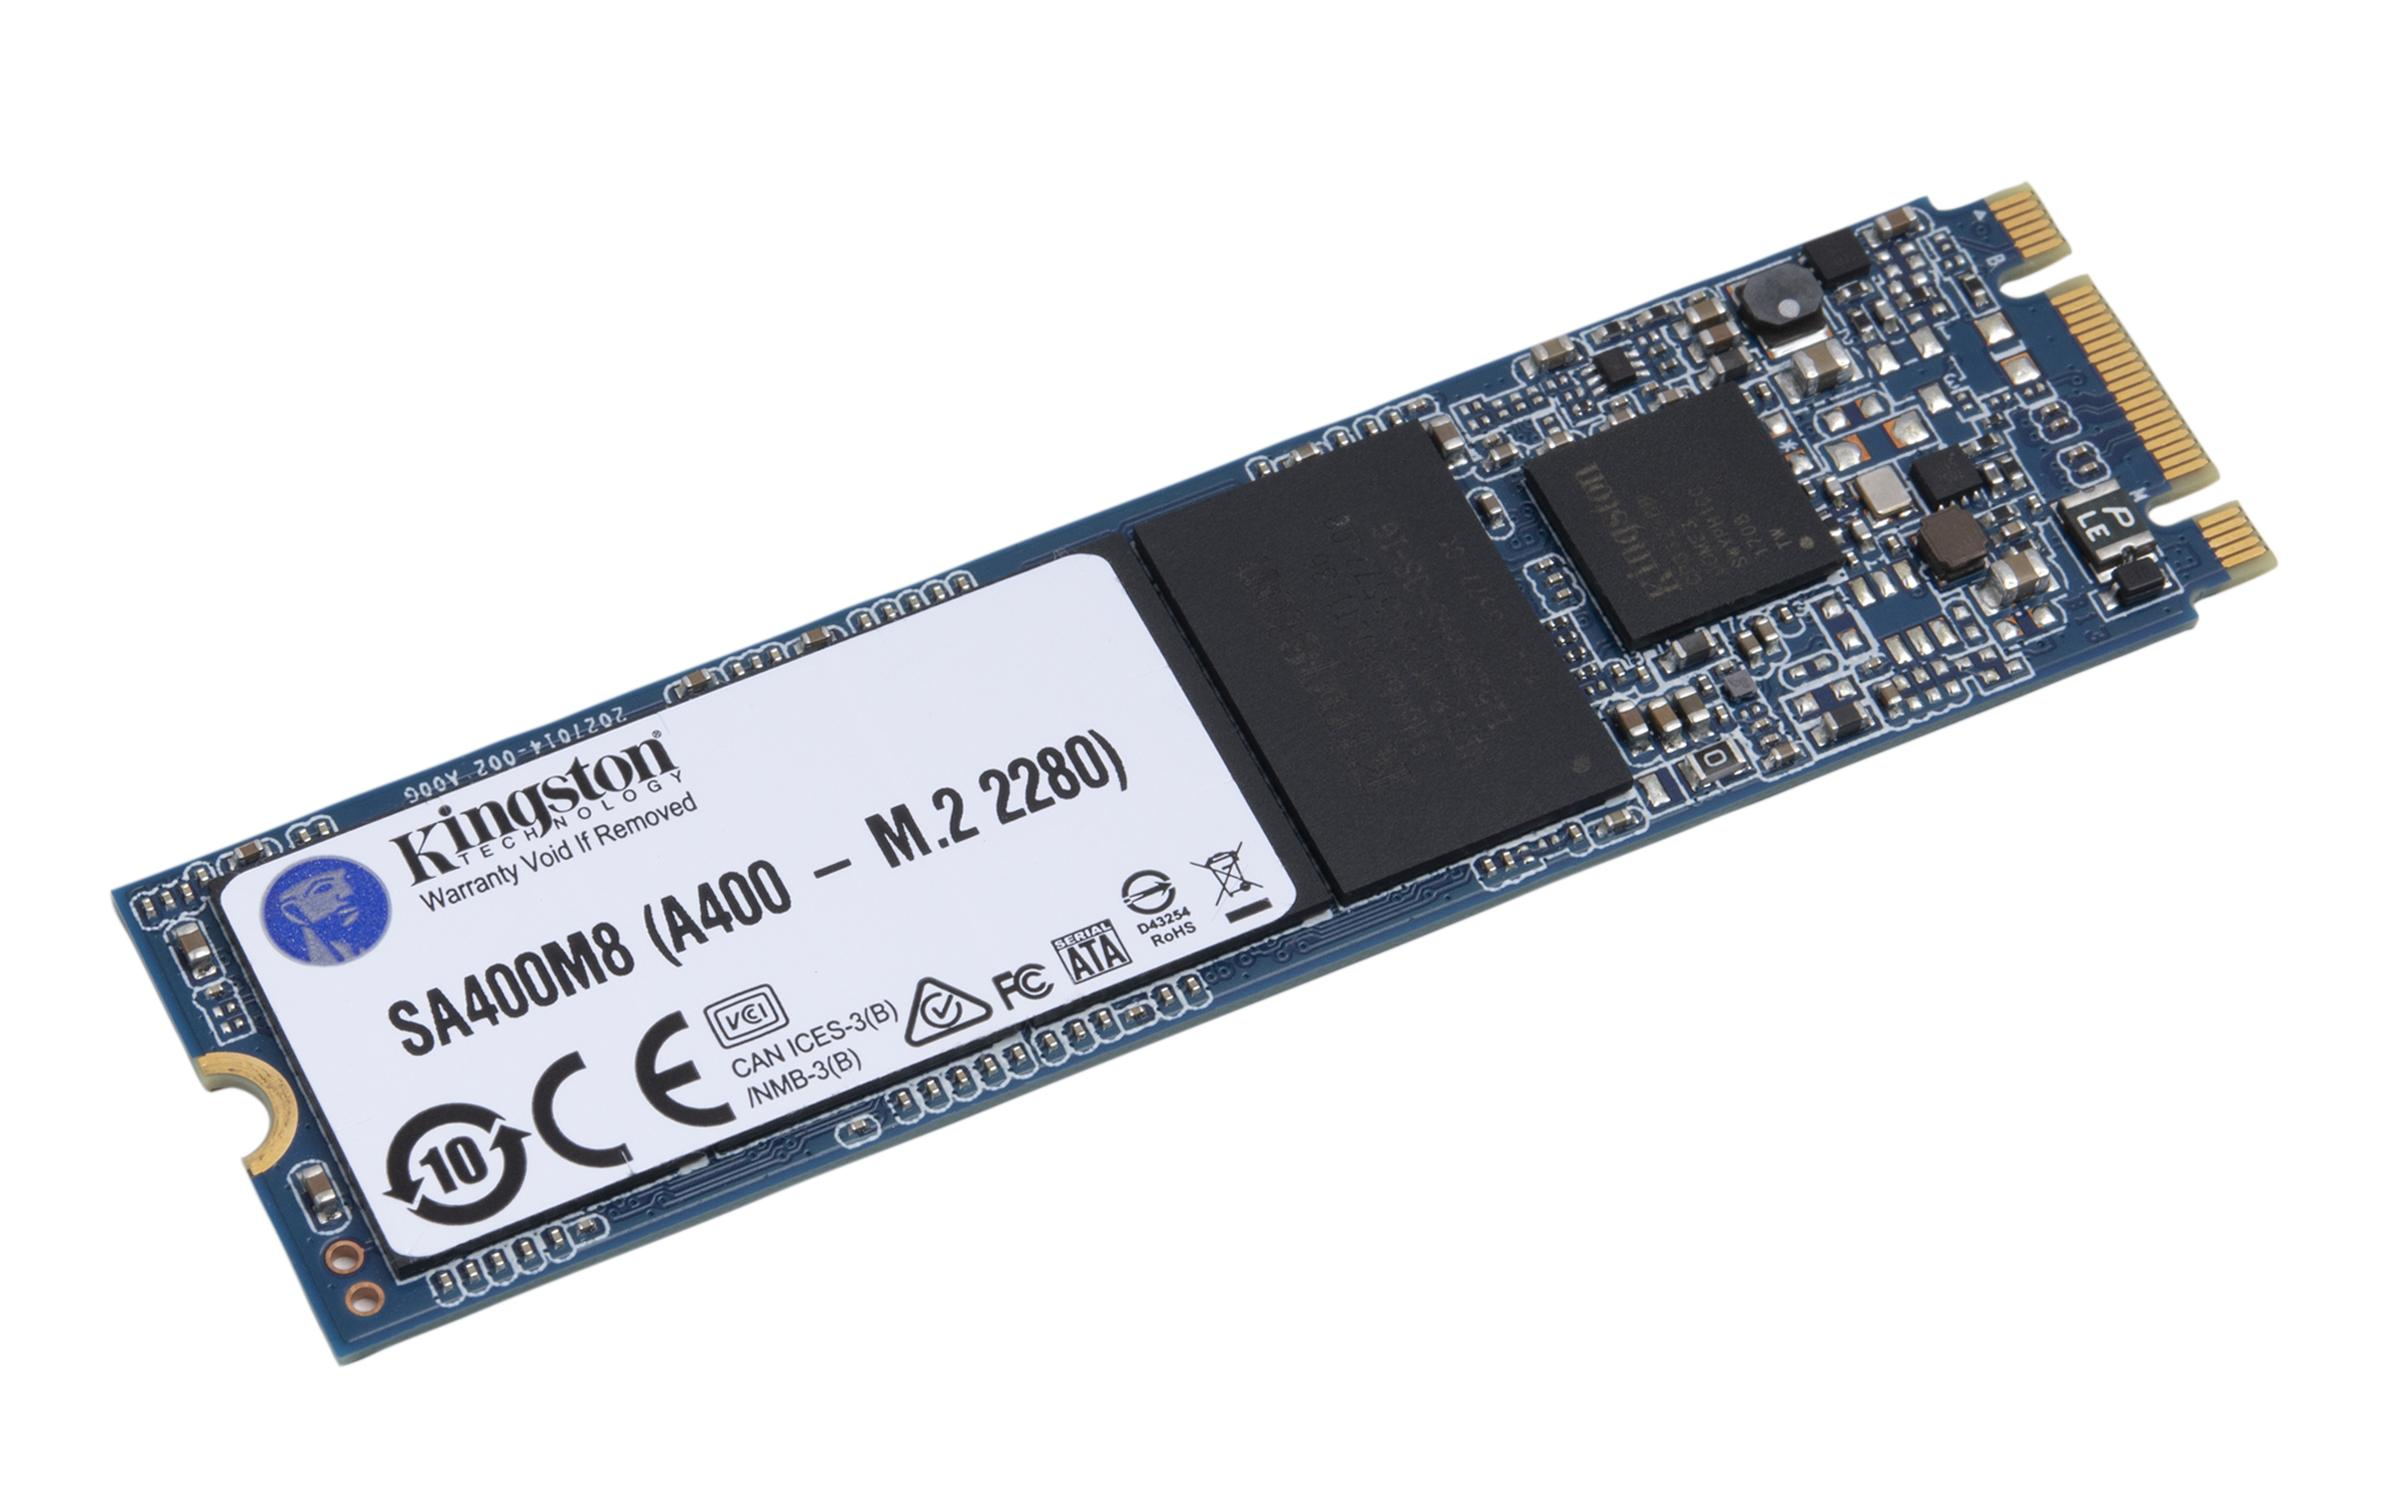 Solid State Drive (SSD) KINGSTON A400, m.2 2280, 240GB-2